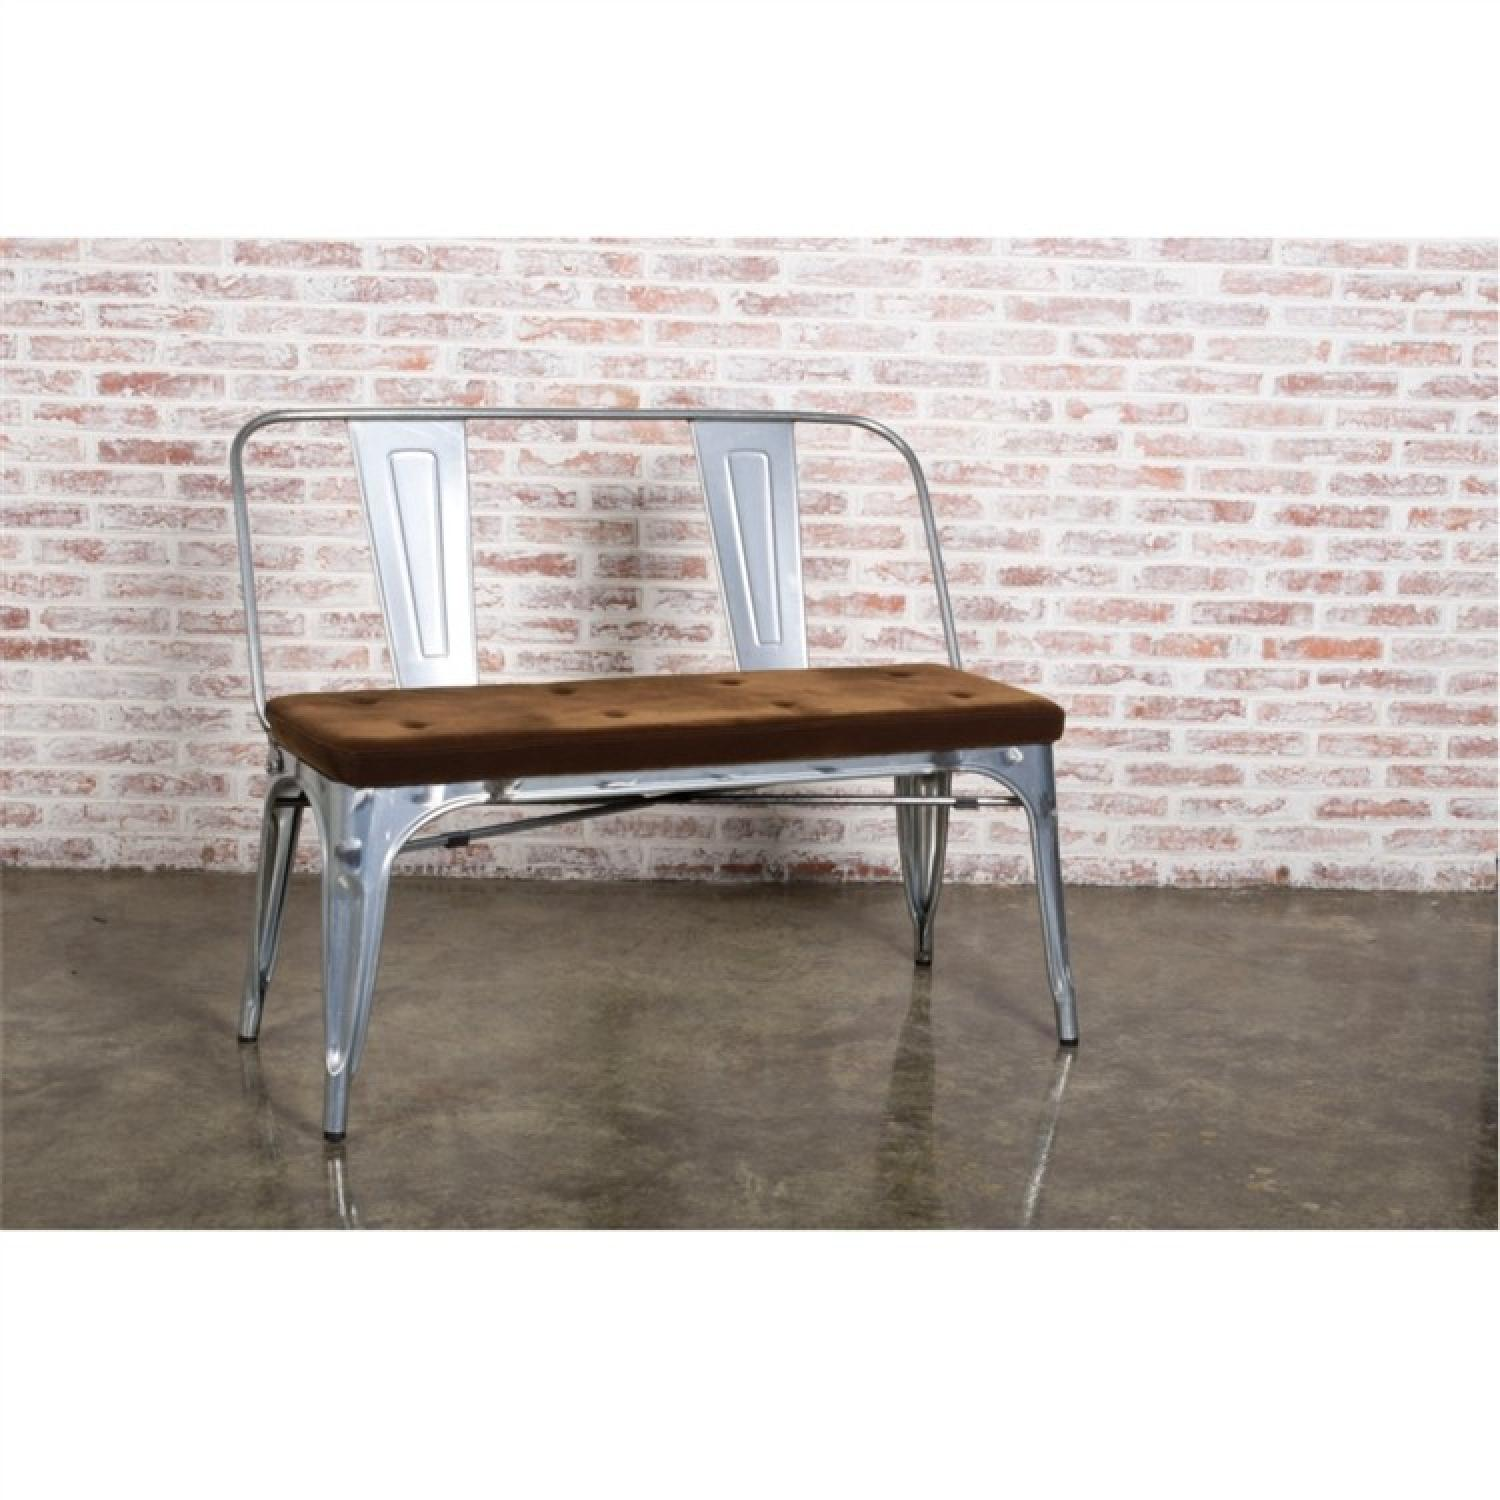 Double Seat Bench In Galvanized Metal Frame w/ Brown Fabric Cushion - image-1